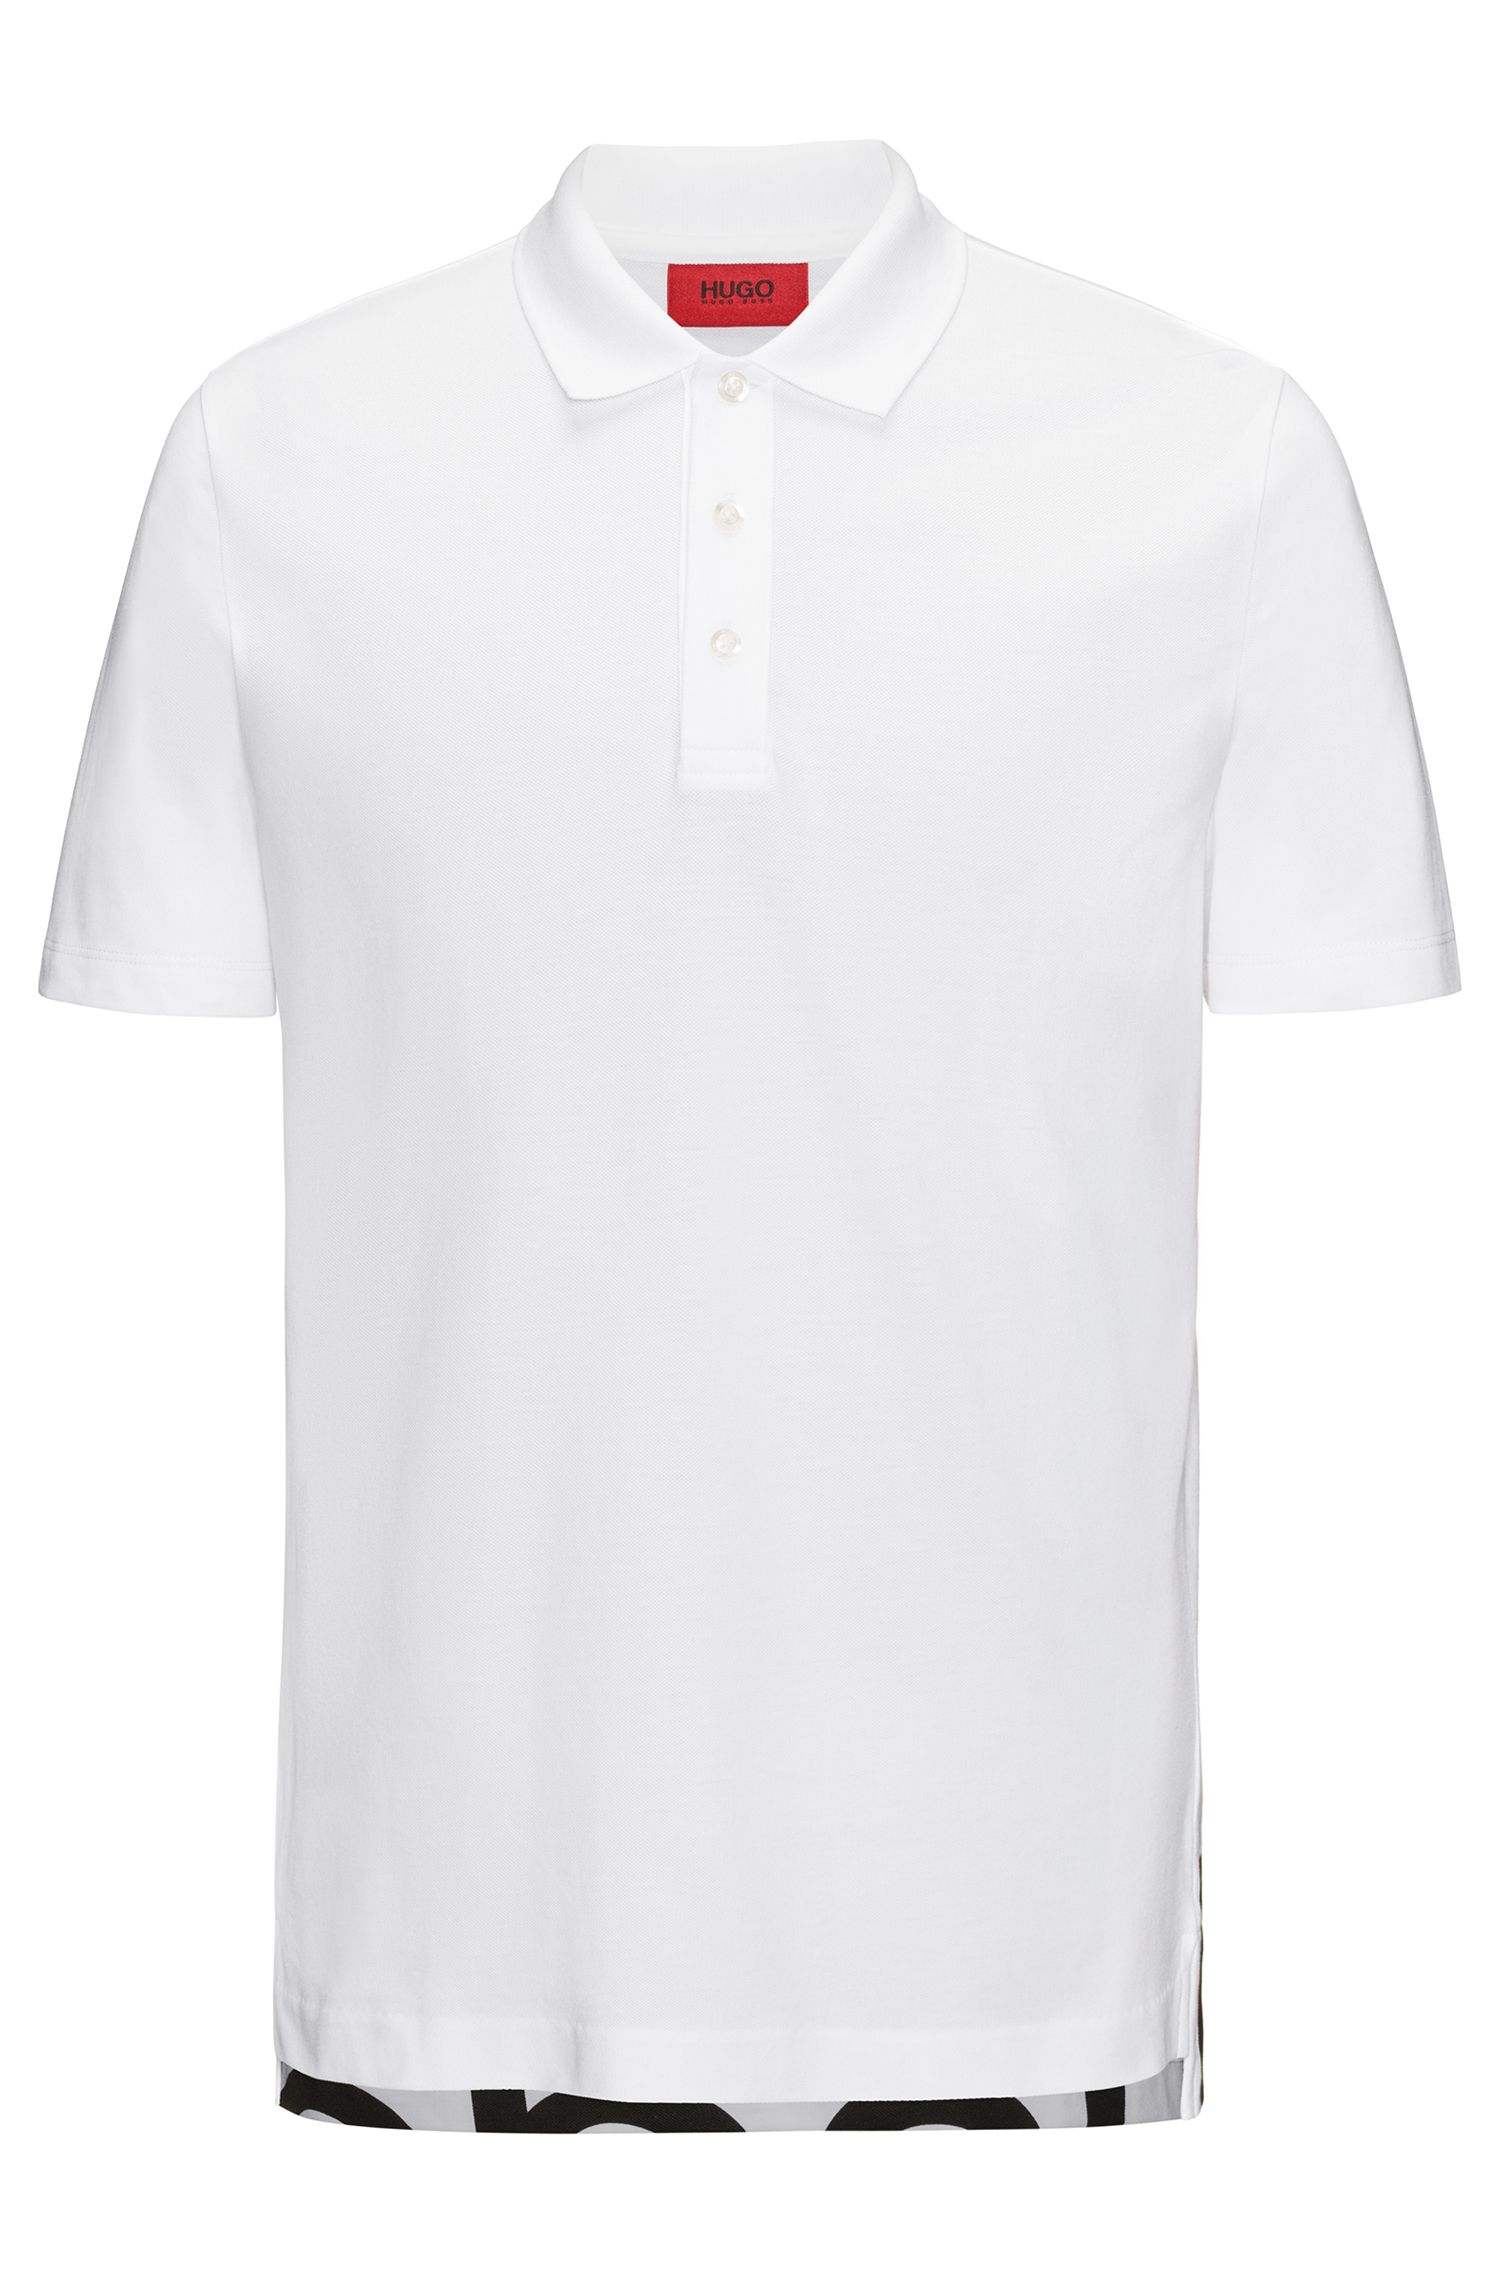 Logo-print dropped-hem polo shirt in cotton pique